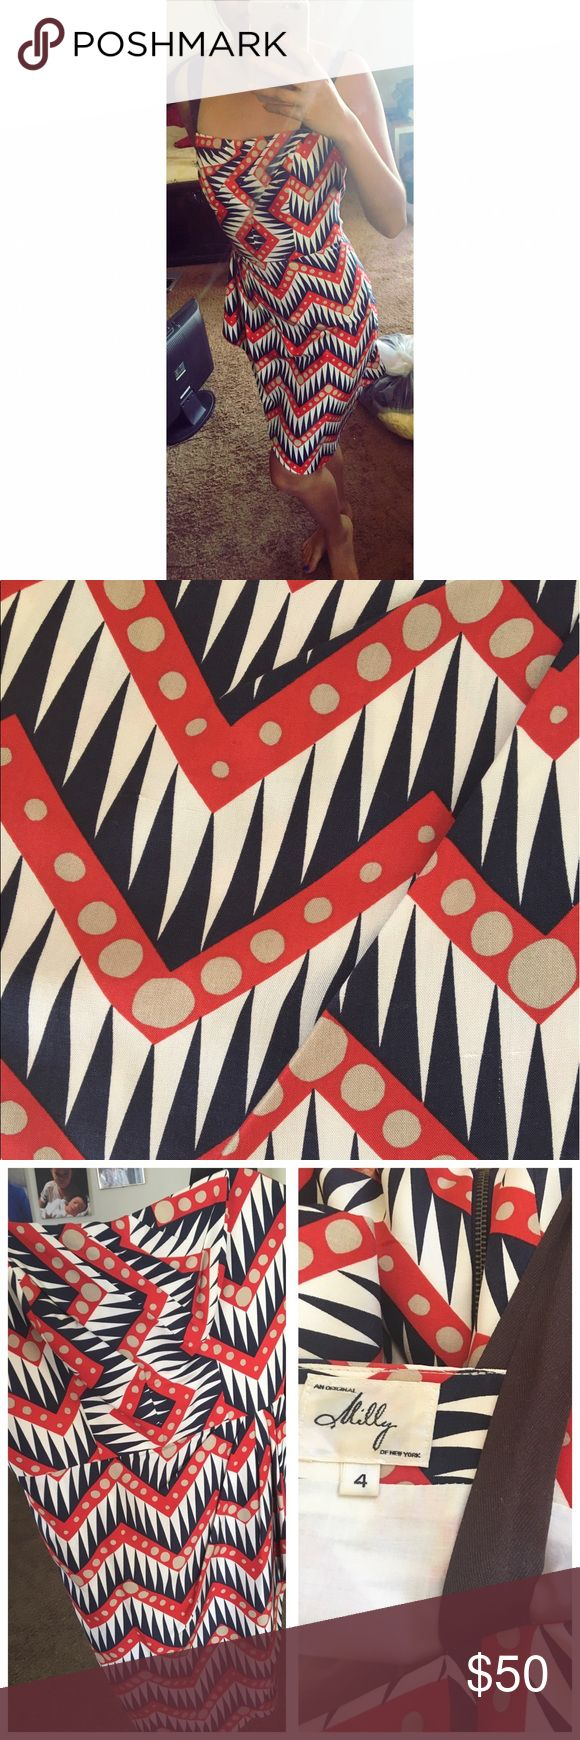 Milly of New York red white and blue chevron dress An original size 4 Milly of New York red white and blue dress with a polka dot chevron print. Has thick brown straps.  Shell made of 100% silk and the  lining made of 100% cotton. Made in the USA Milly Dresses